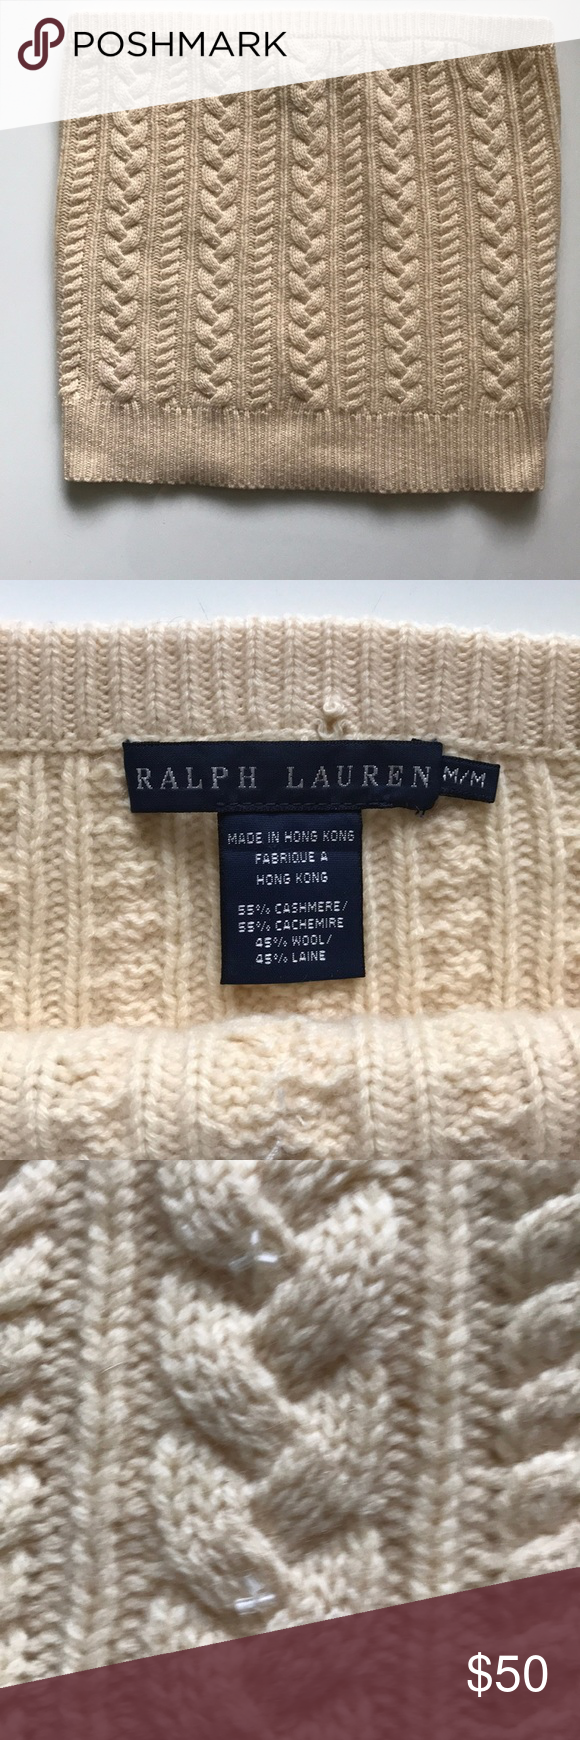 2e367b1c36e  Ralph Lauren  Cream Cable Knit Tube Top  Ralph Lauren  Cream cable knot tube  top. Tiny beading on the front (see last pic). Size M. 55% cashmere 45%  wool.